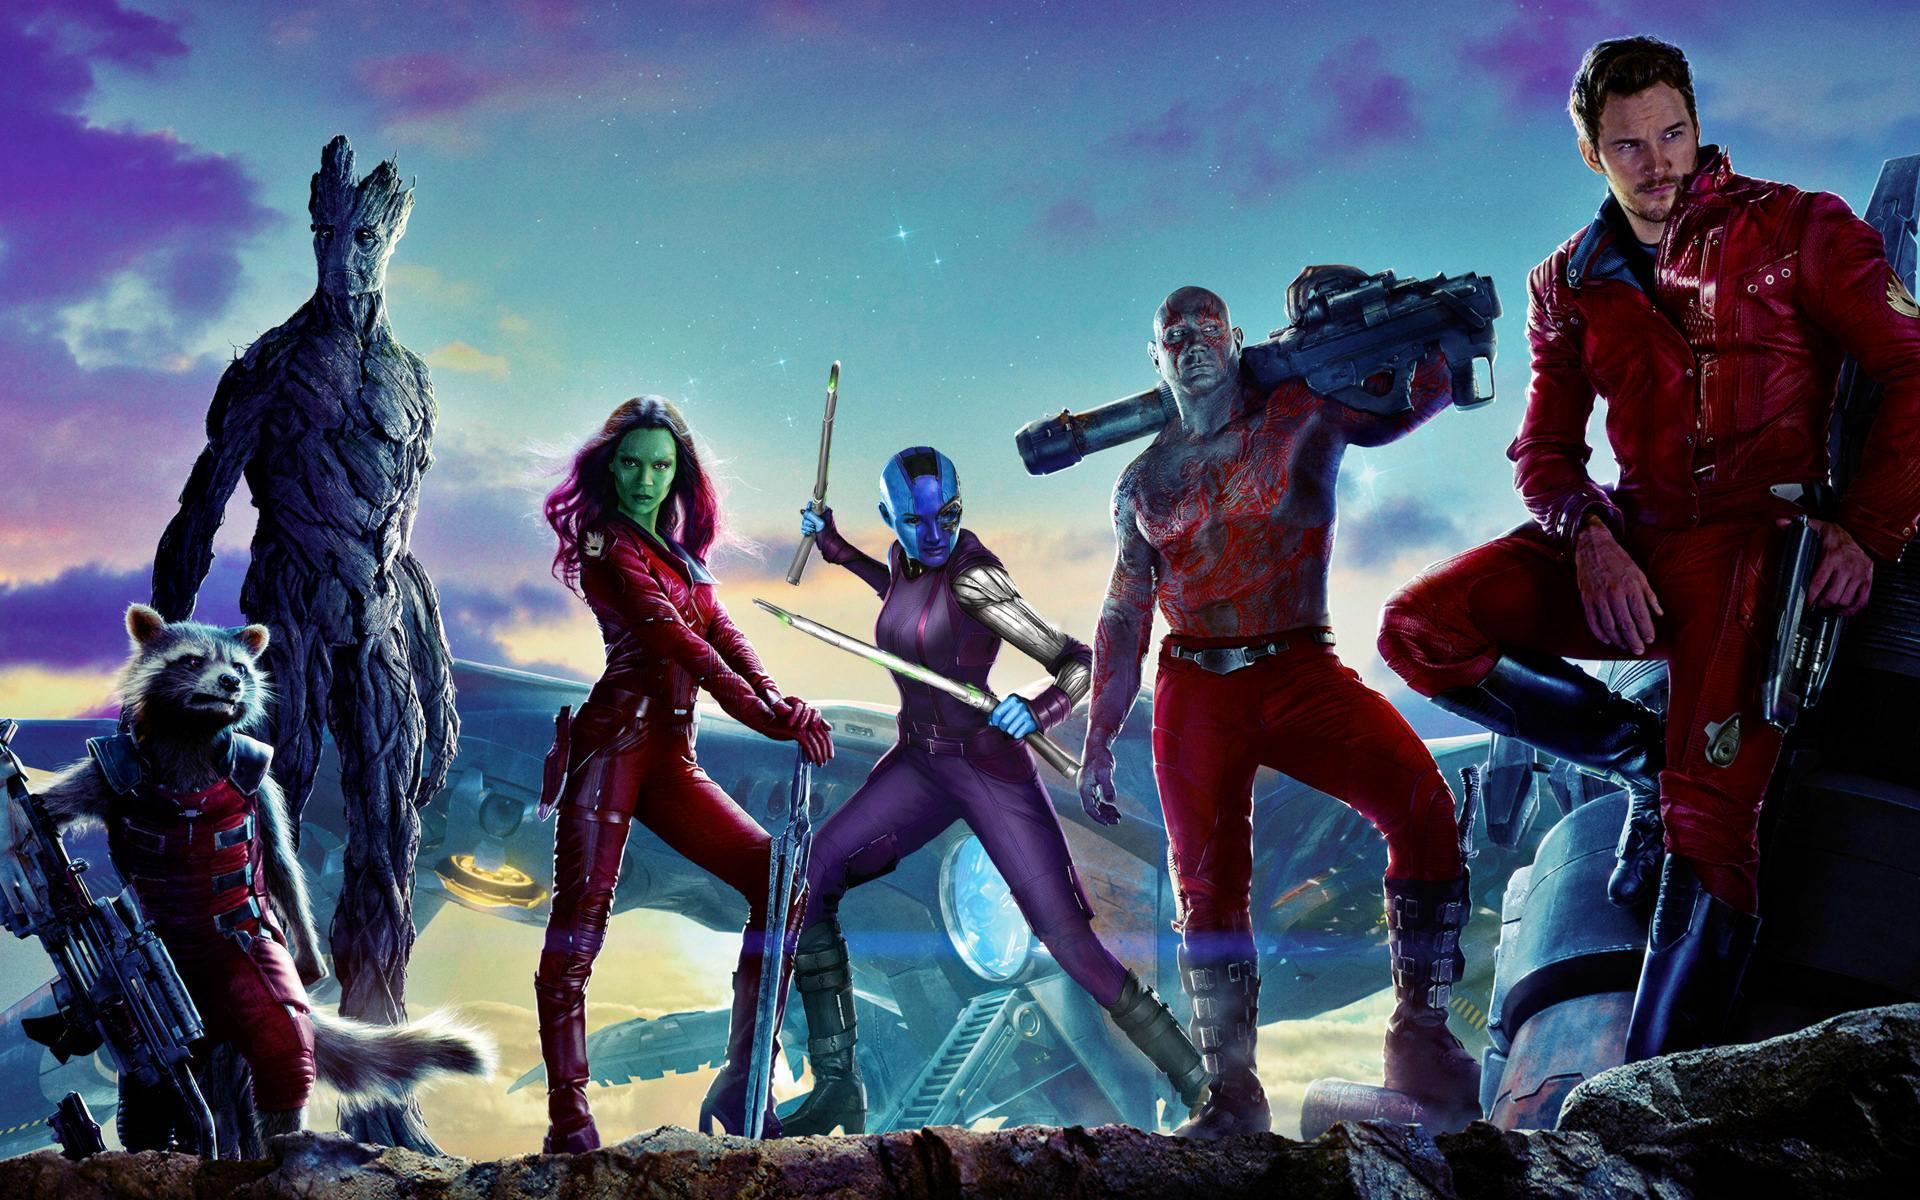 Guardians Of The Galaxy 2 Karen Gillan Character Nebula Was Killed Off In First Film